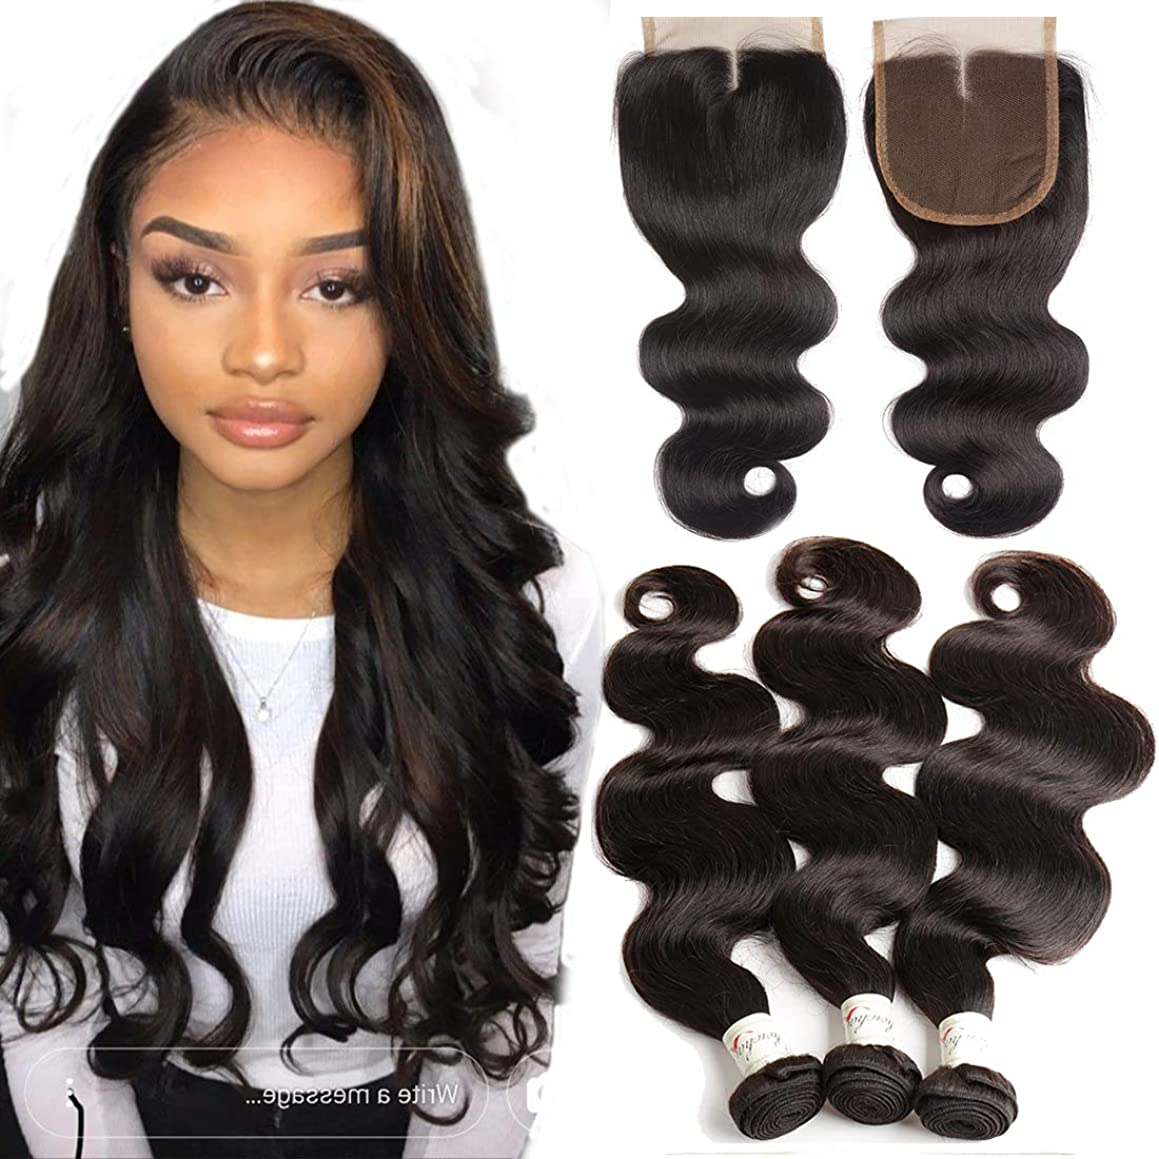 10A Grade Body Wave 3 Bundles with Closure Brazilian Human Hair Body Wave Bundles with Middle Lace Closure (12 14 16+10) 100% Unprocessed Virgin Hair Weave Extensions and Top Closure